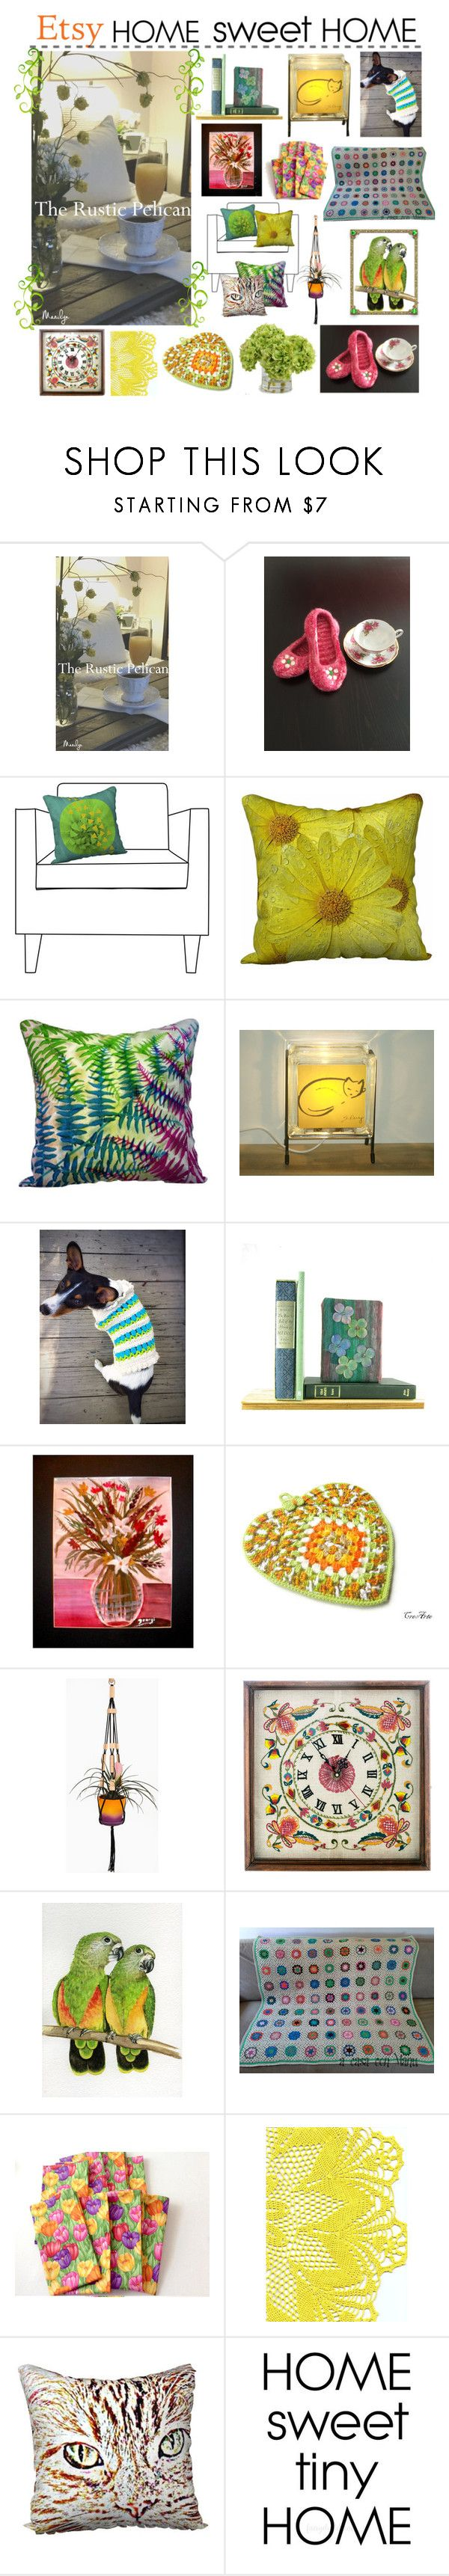 Etsy Home Sweet Home by belladonnasjoy on Polyvore featuring interior, interiors, interior design, home, home decor, interior decorating, Rustico, Hostess, modern and rustic